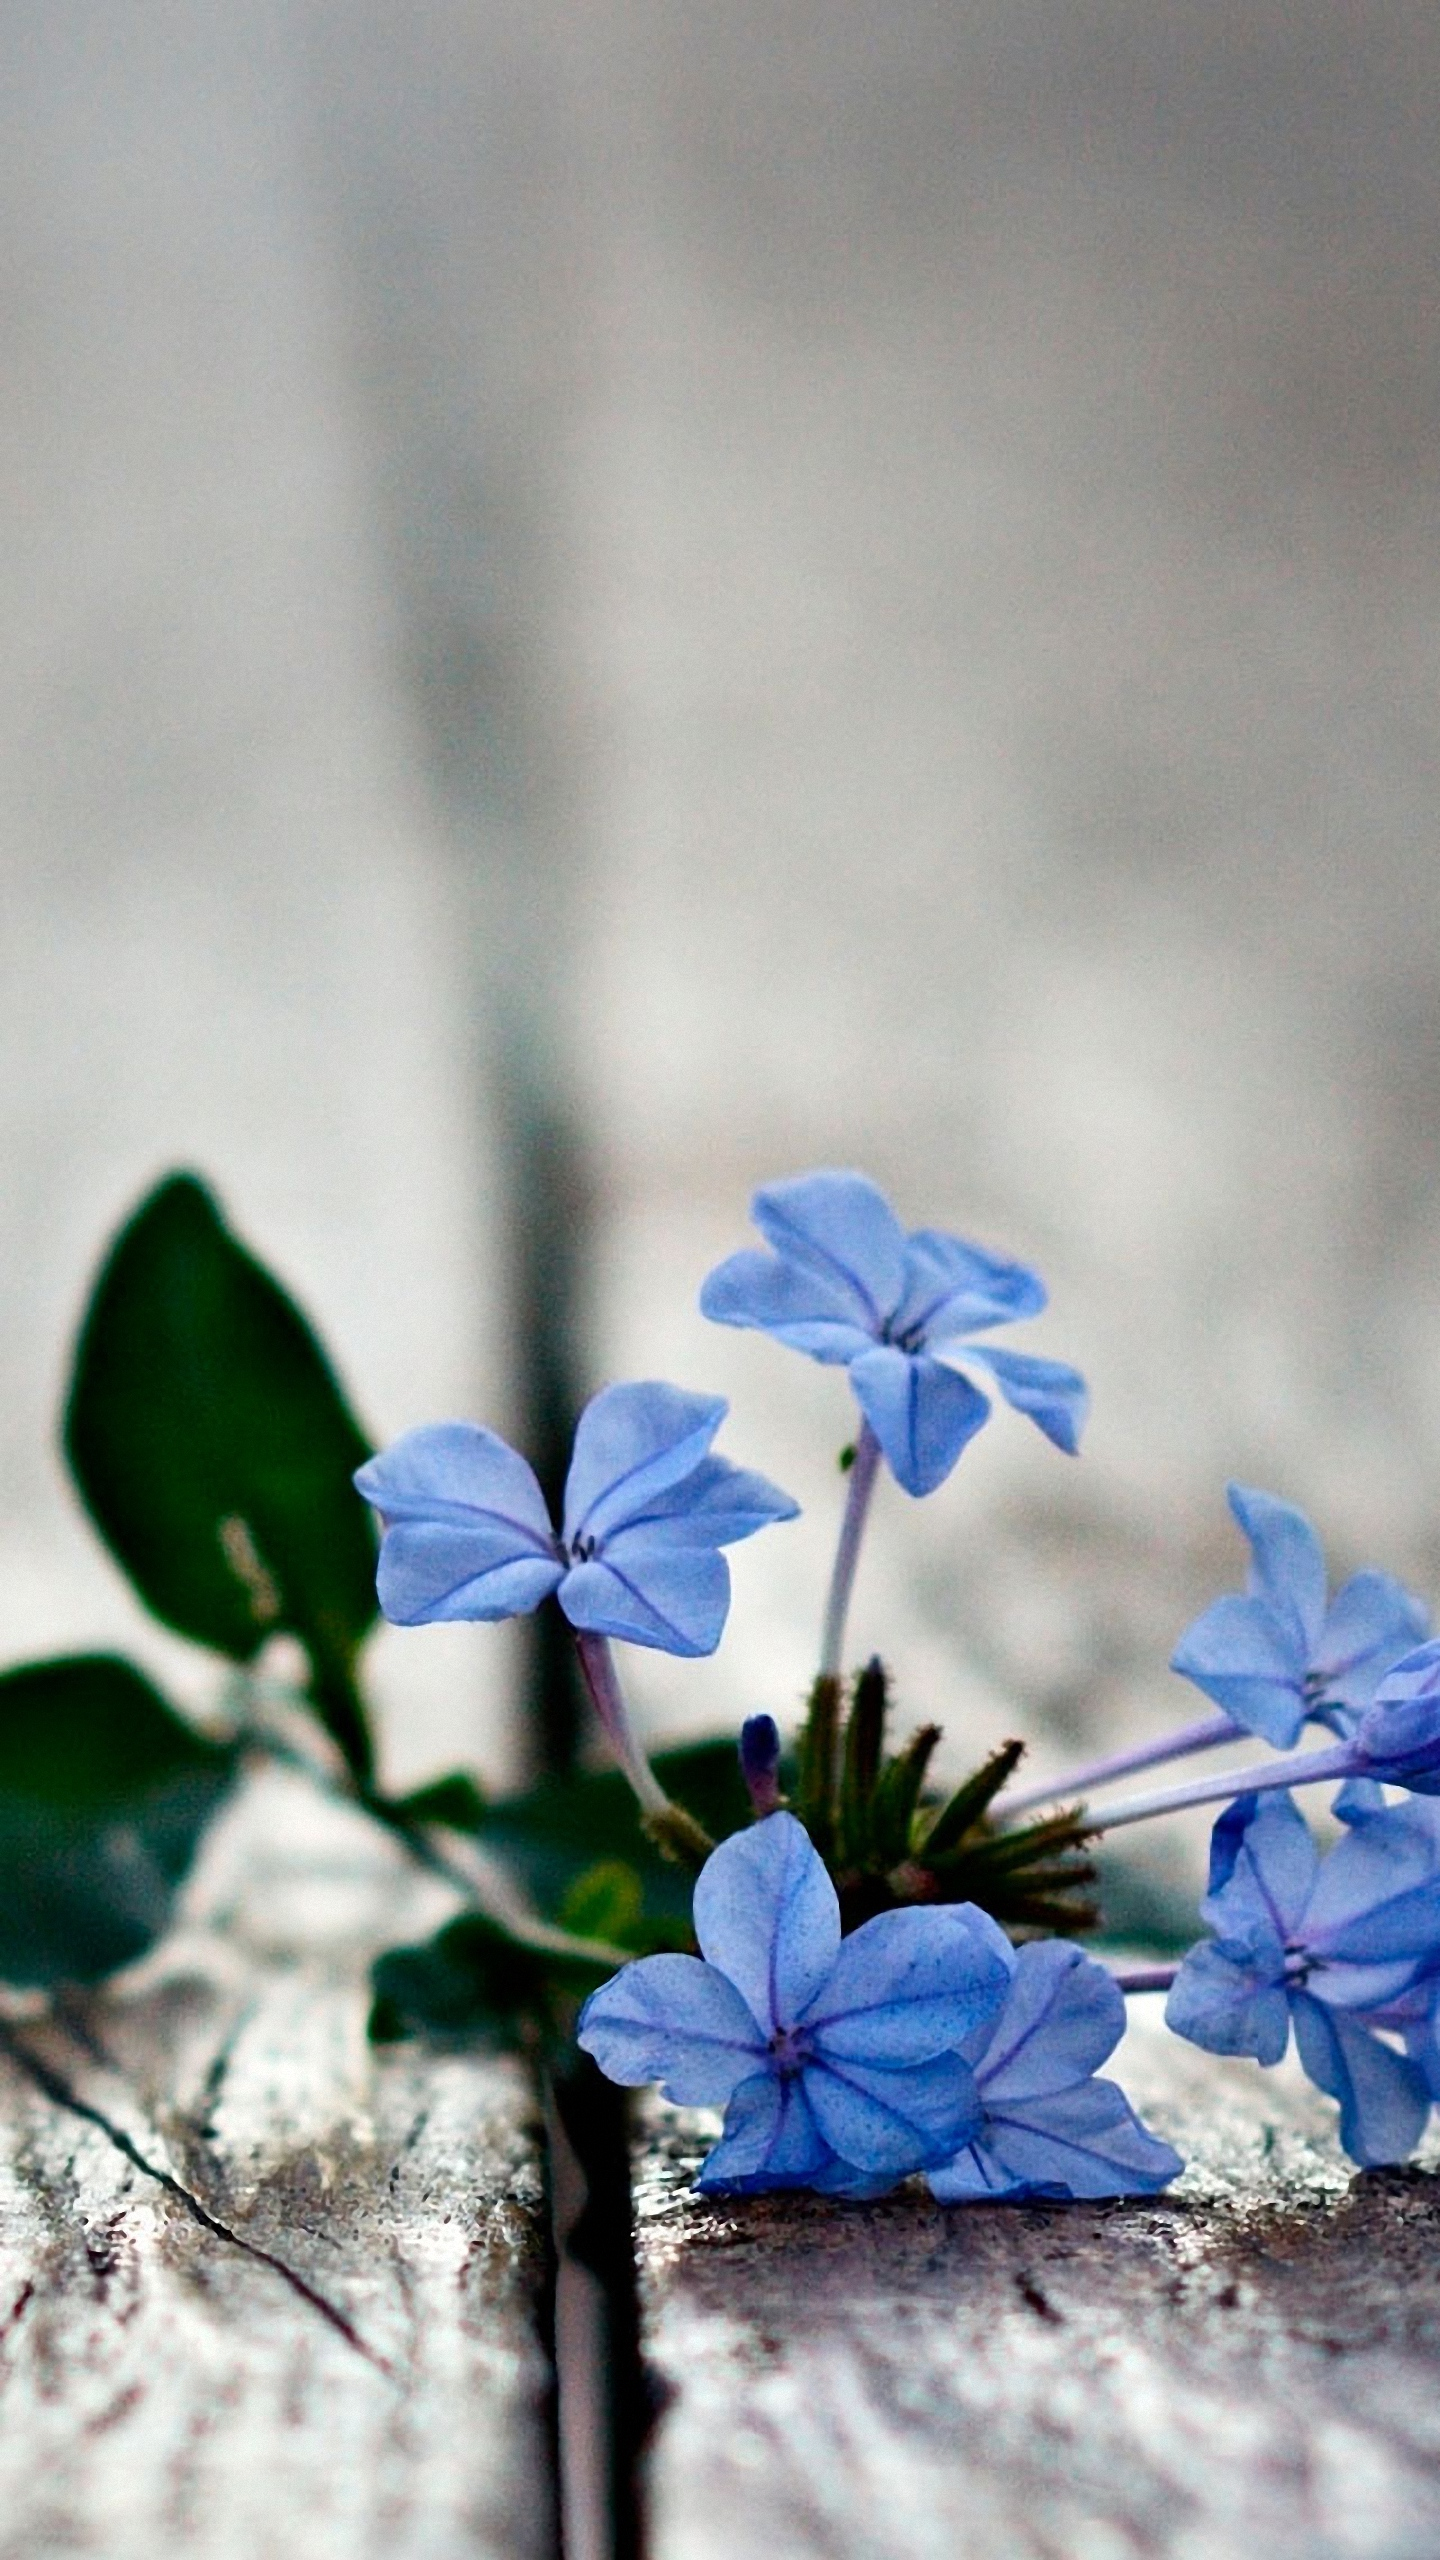 Blue Flowers mobile phone Wallpapers HD 1440x2560 1440x2560